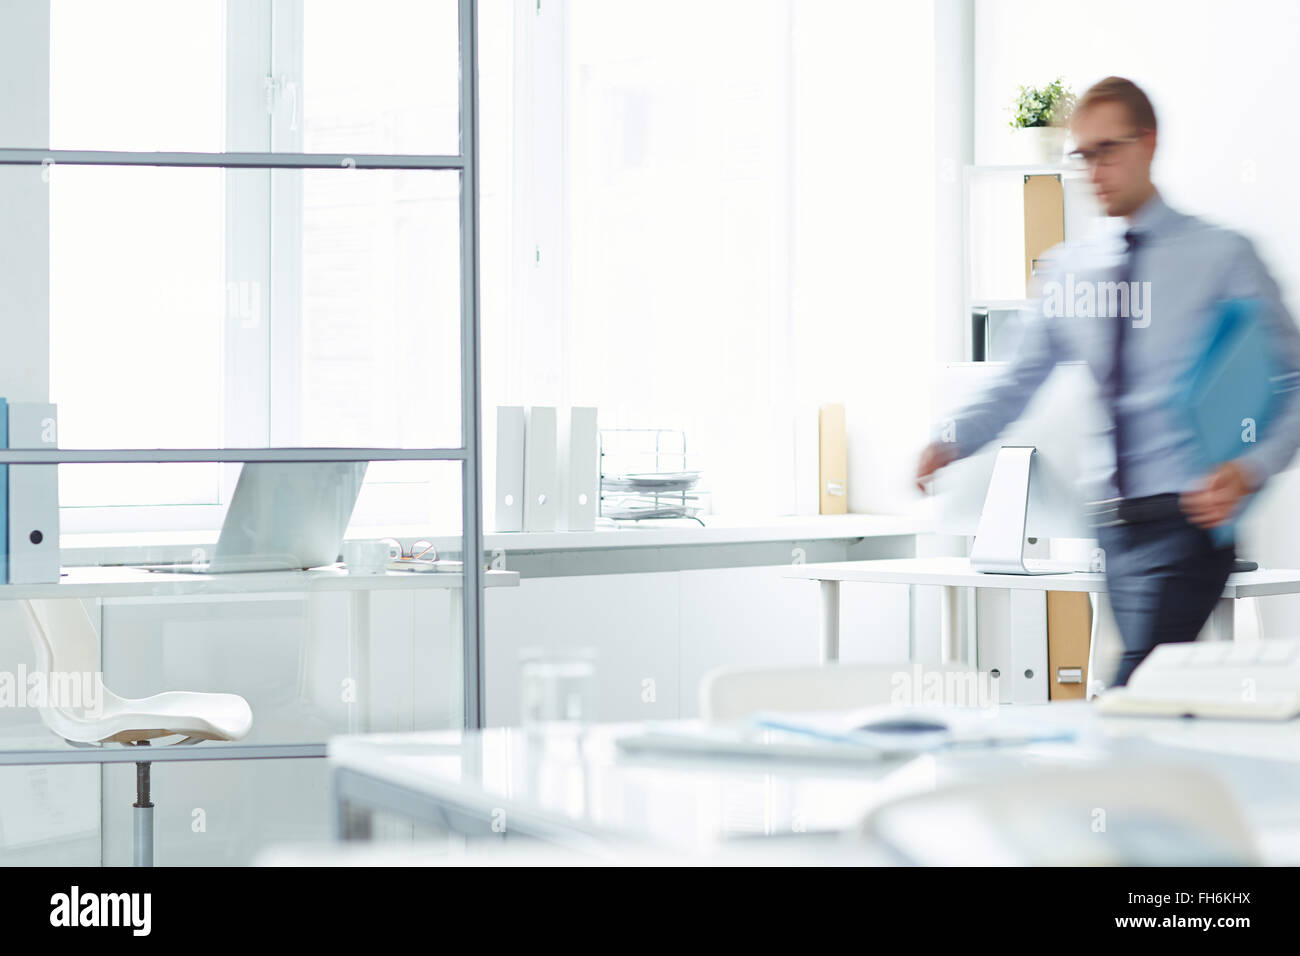 Blurred figure of office manager passing by workplace - Stock Image